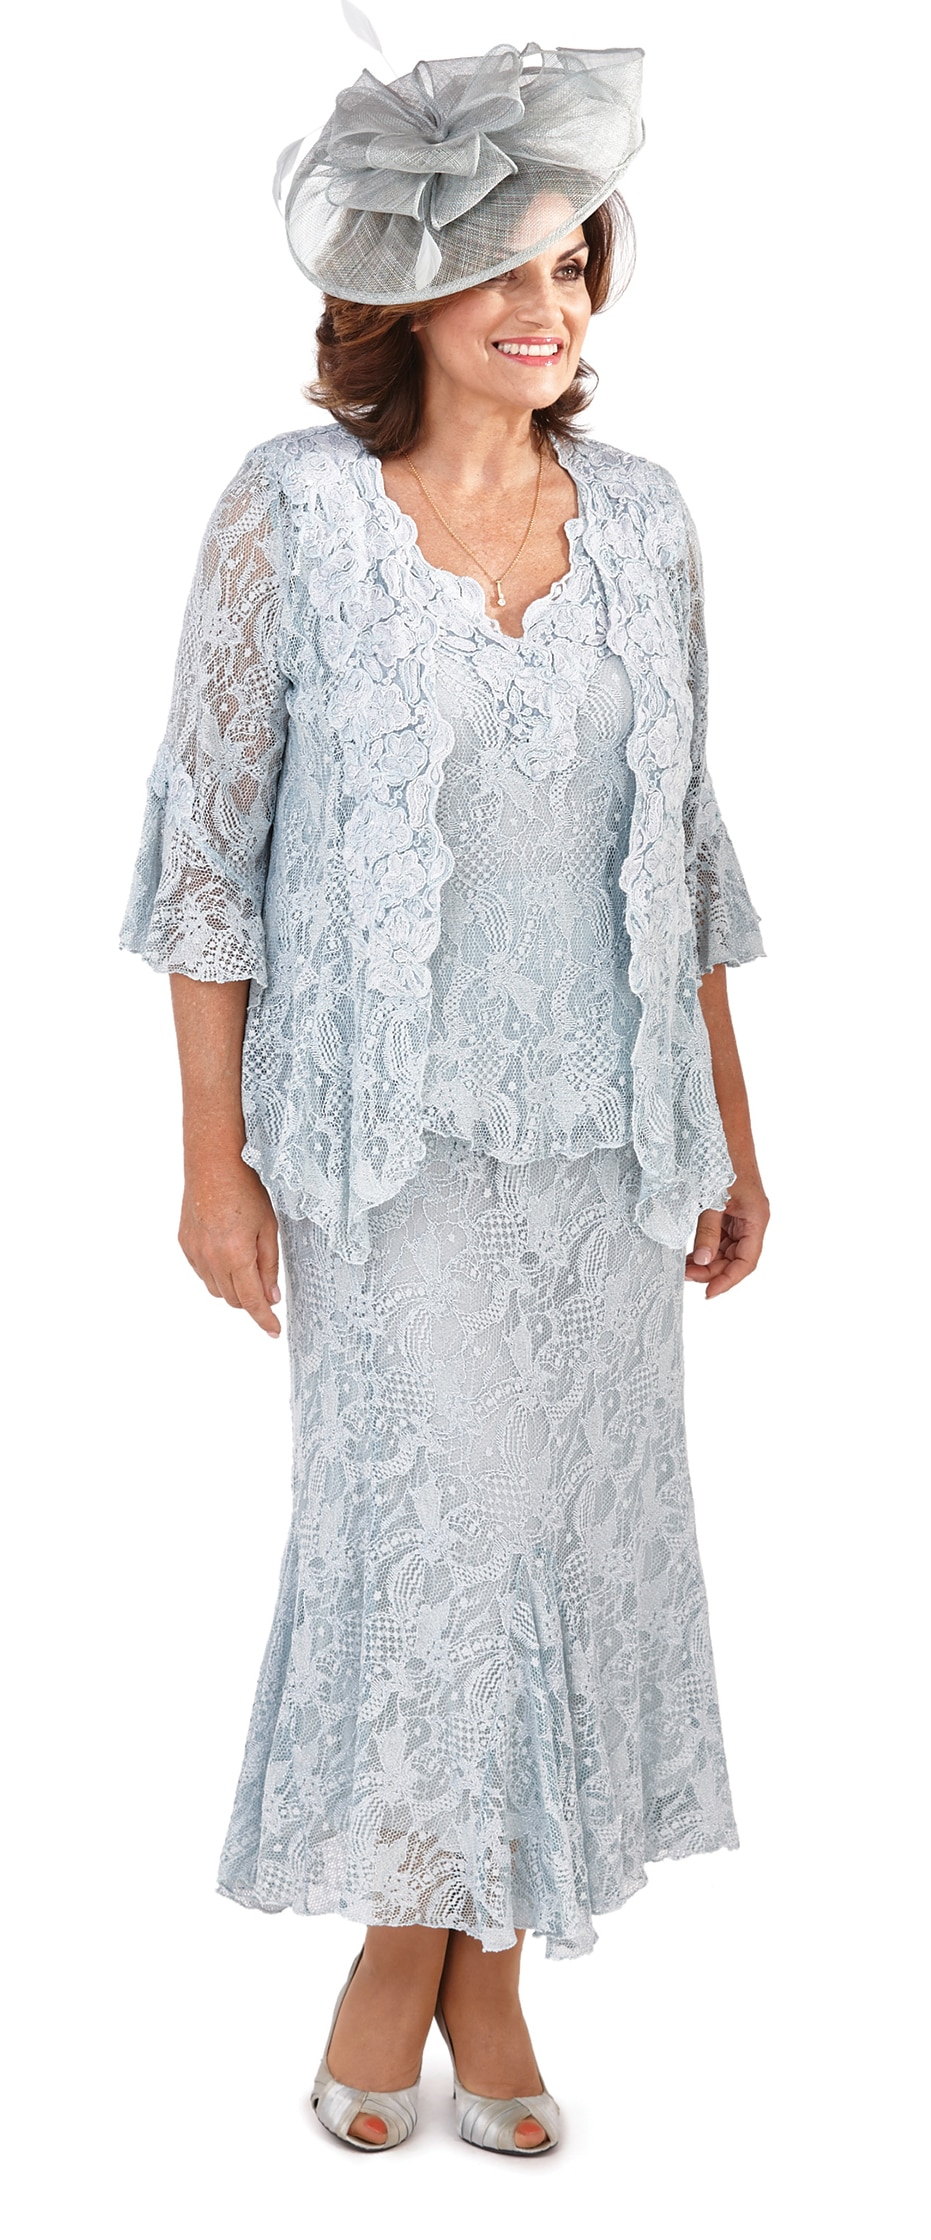 Outfit with an embellished neckline drawing attention away from lower body